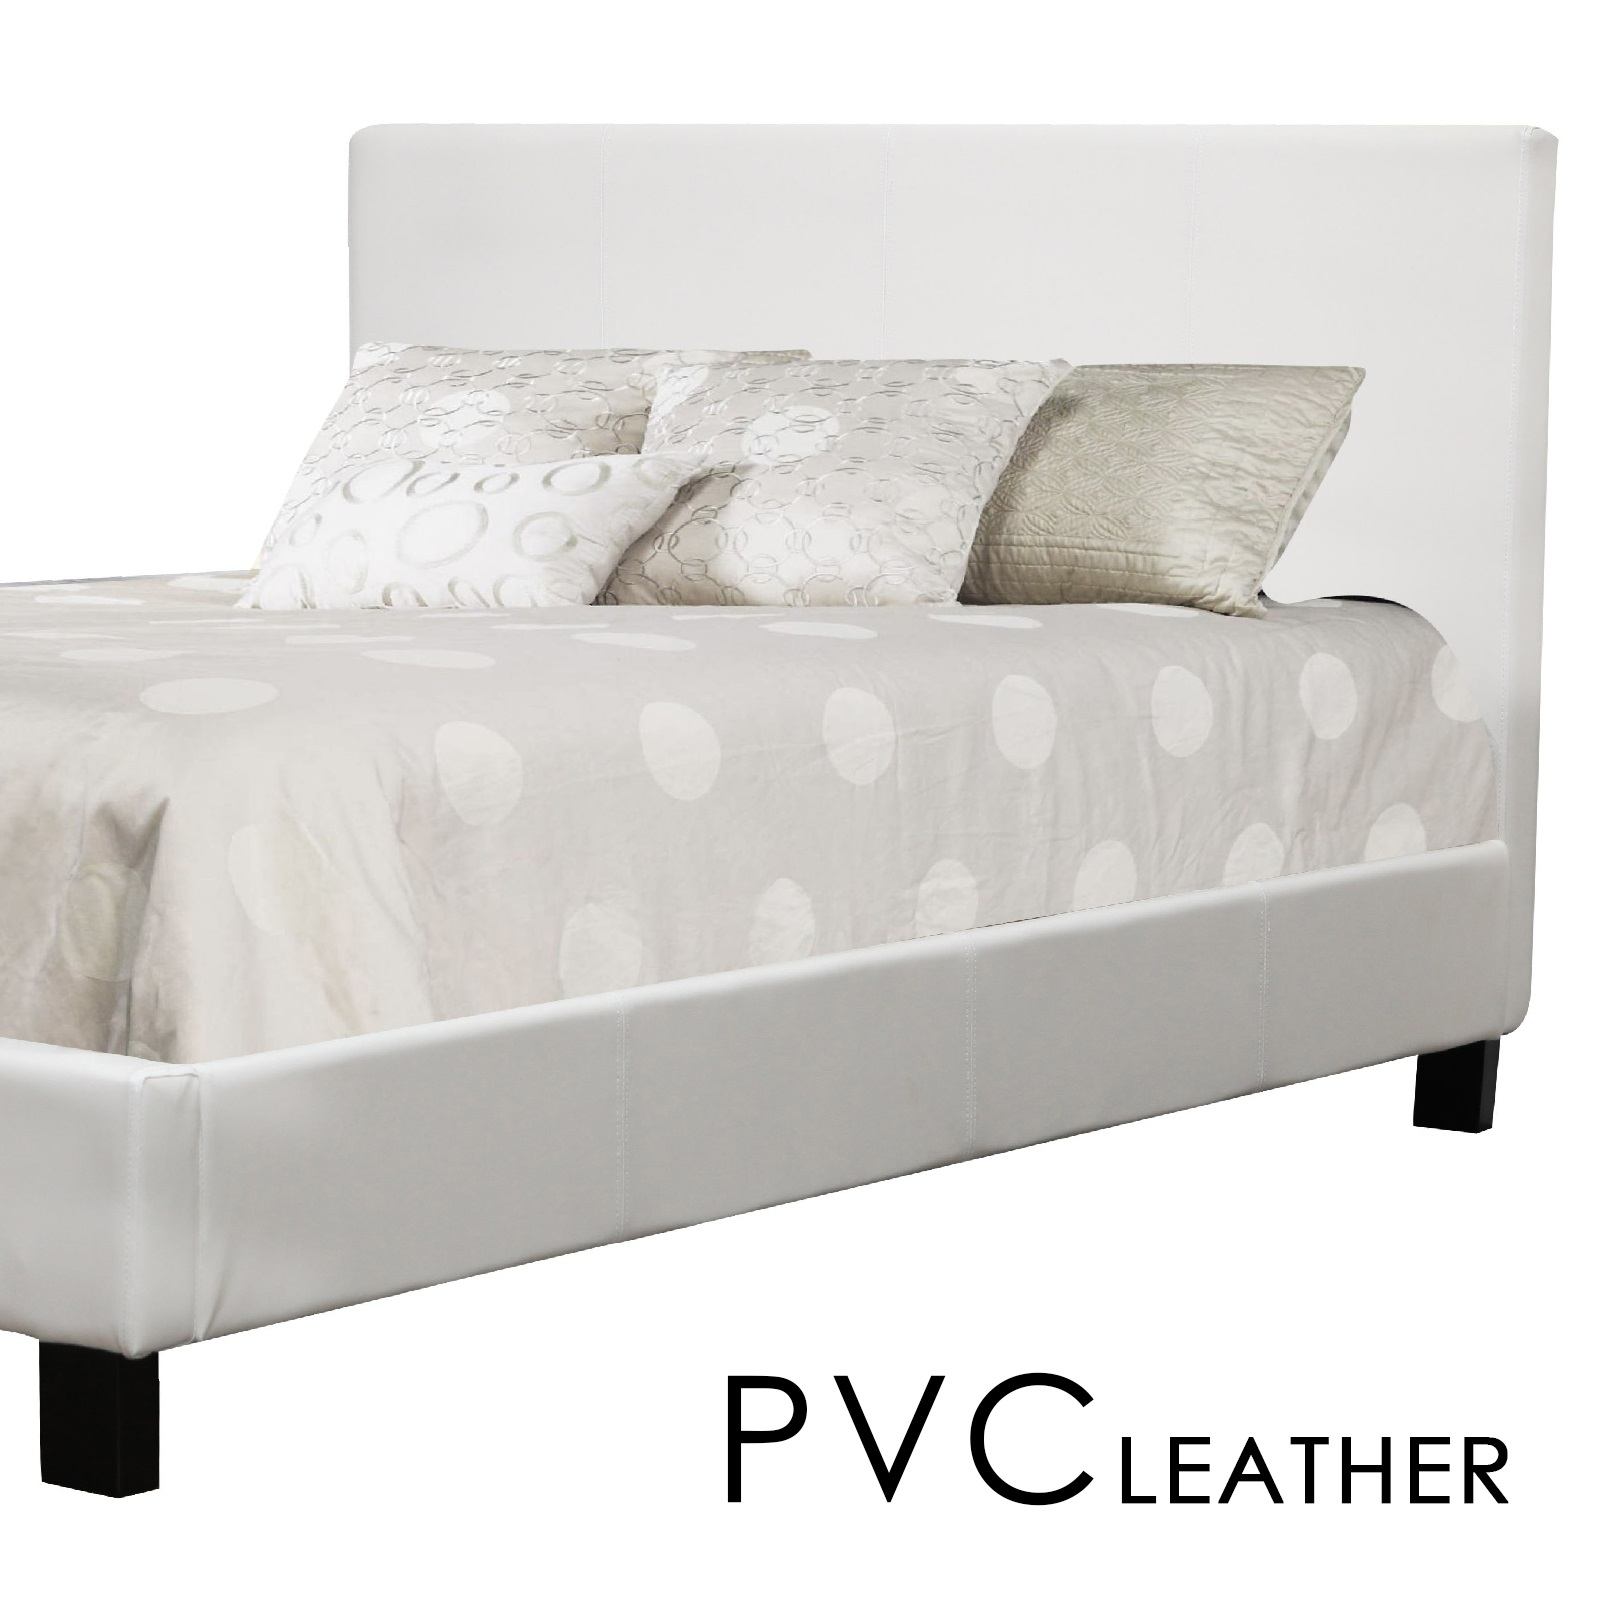 Pvc Bed: New Matte Finished Prado Single White PVC Leather Bed